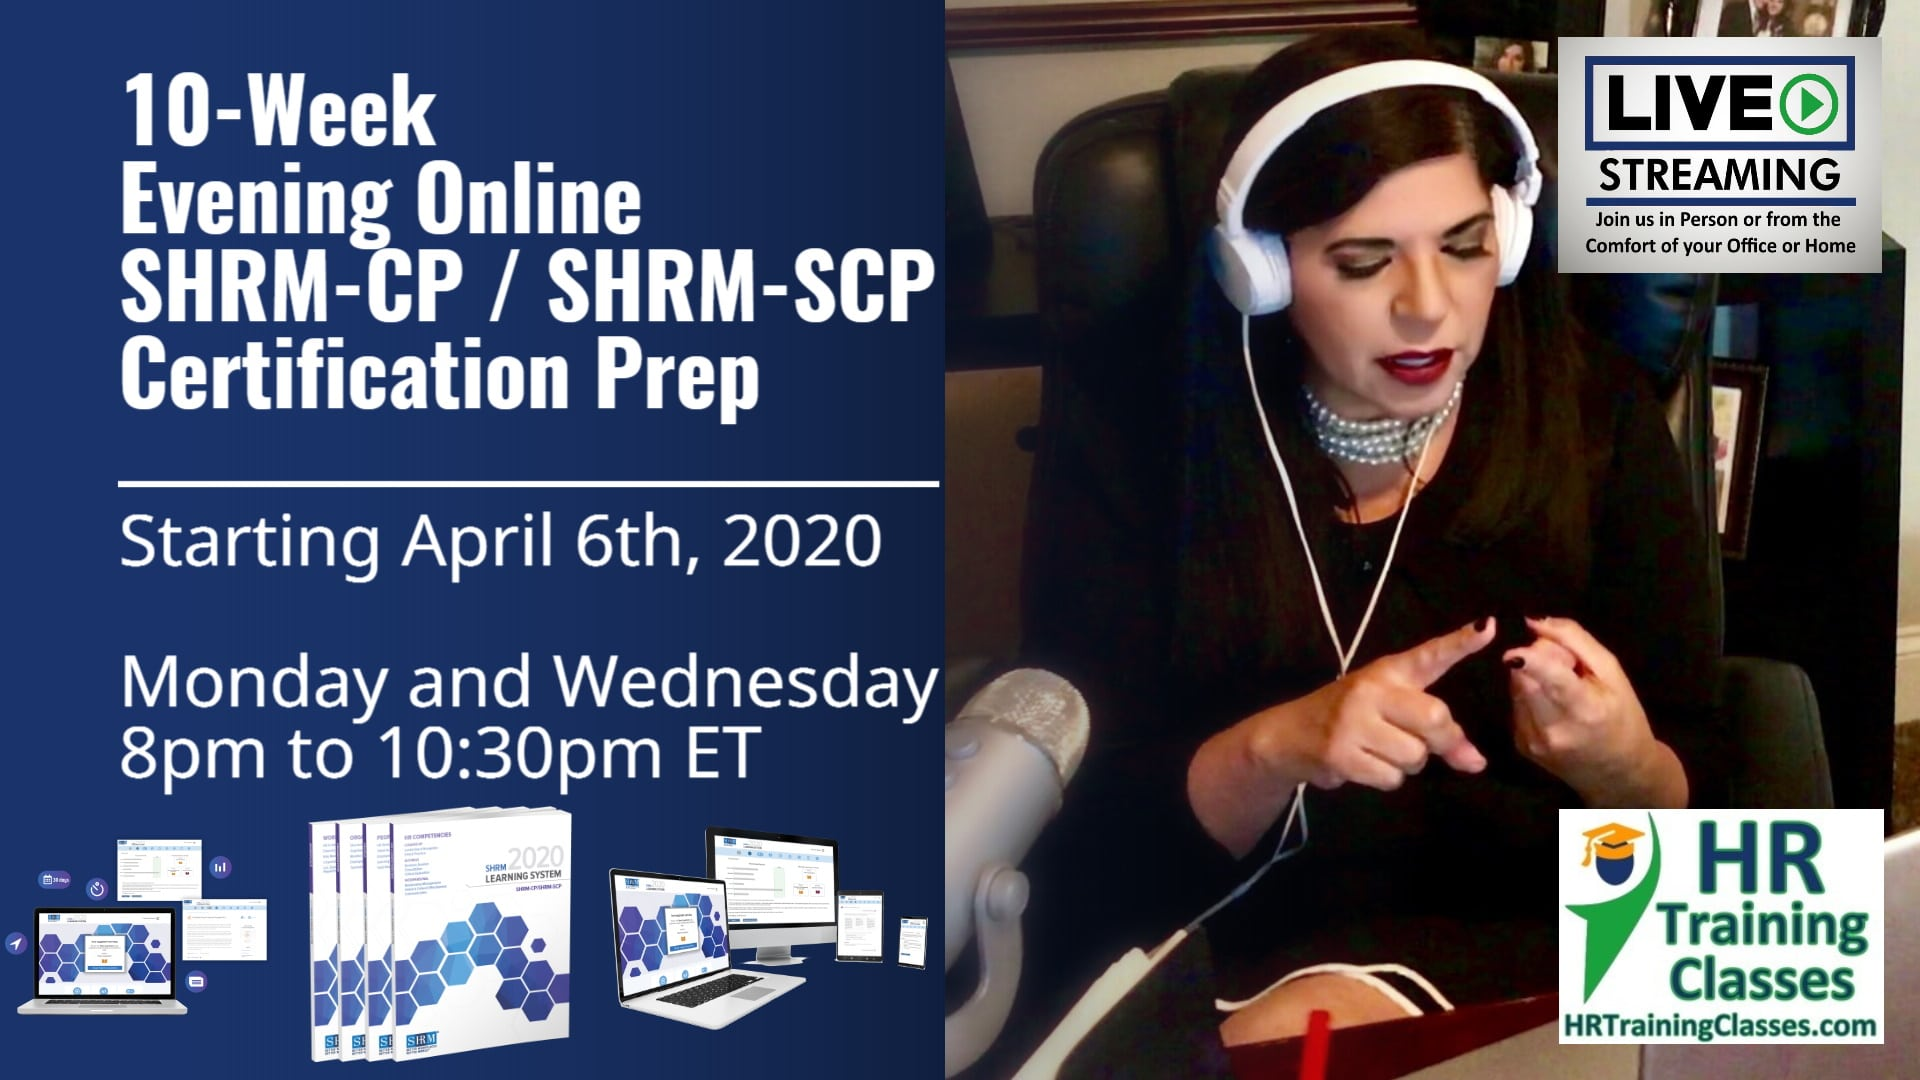 10 Week Live Online SHRM-CP, SHRM-SCP Exam Prep starting 4-6-20 and led by Elga lejarza-Penn, aPHR, PHR, SPHR, SHRM-CP, SHRM-SCP 8-1030pm